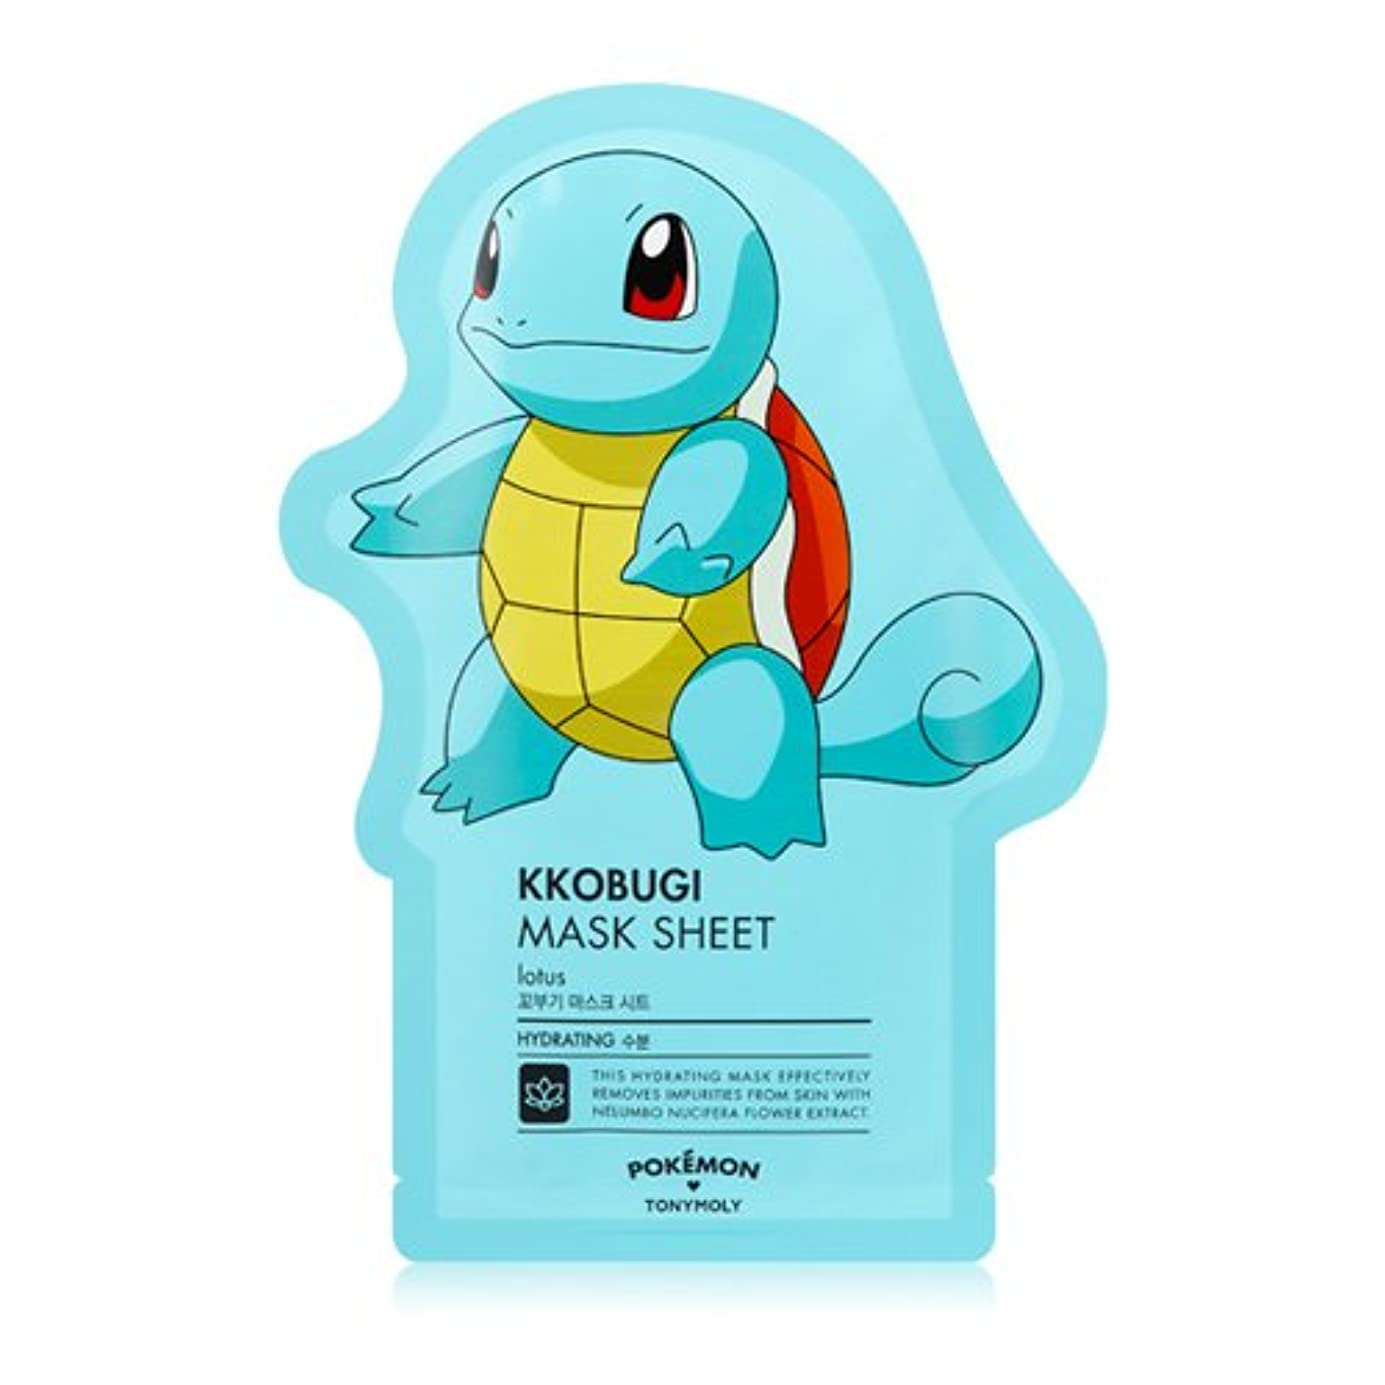 と組む故意の花嫁TONYMOLY x Pokemon Squirtle/Kkobugi Mask Sheet (並行輸入品)